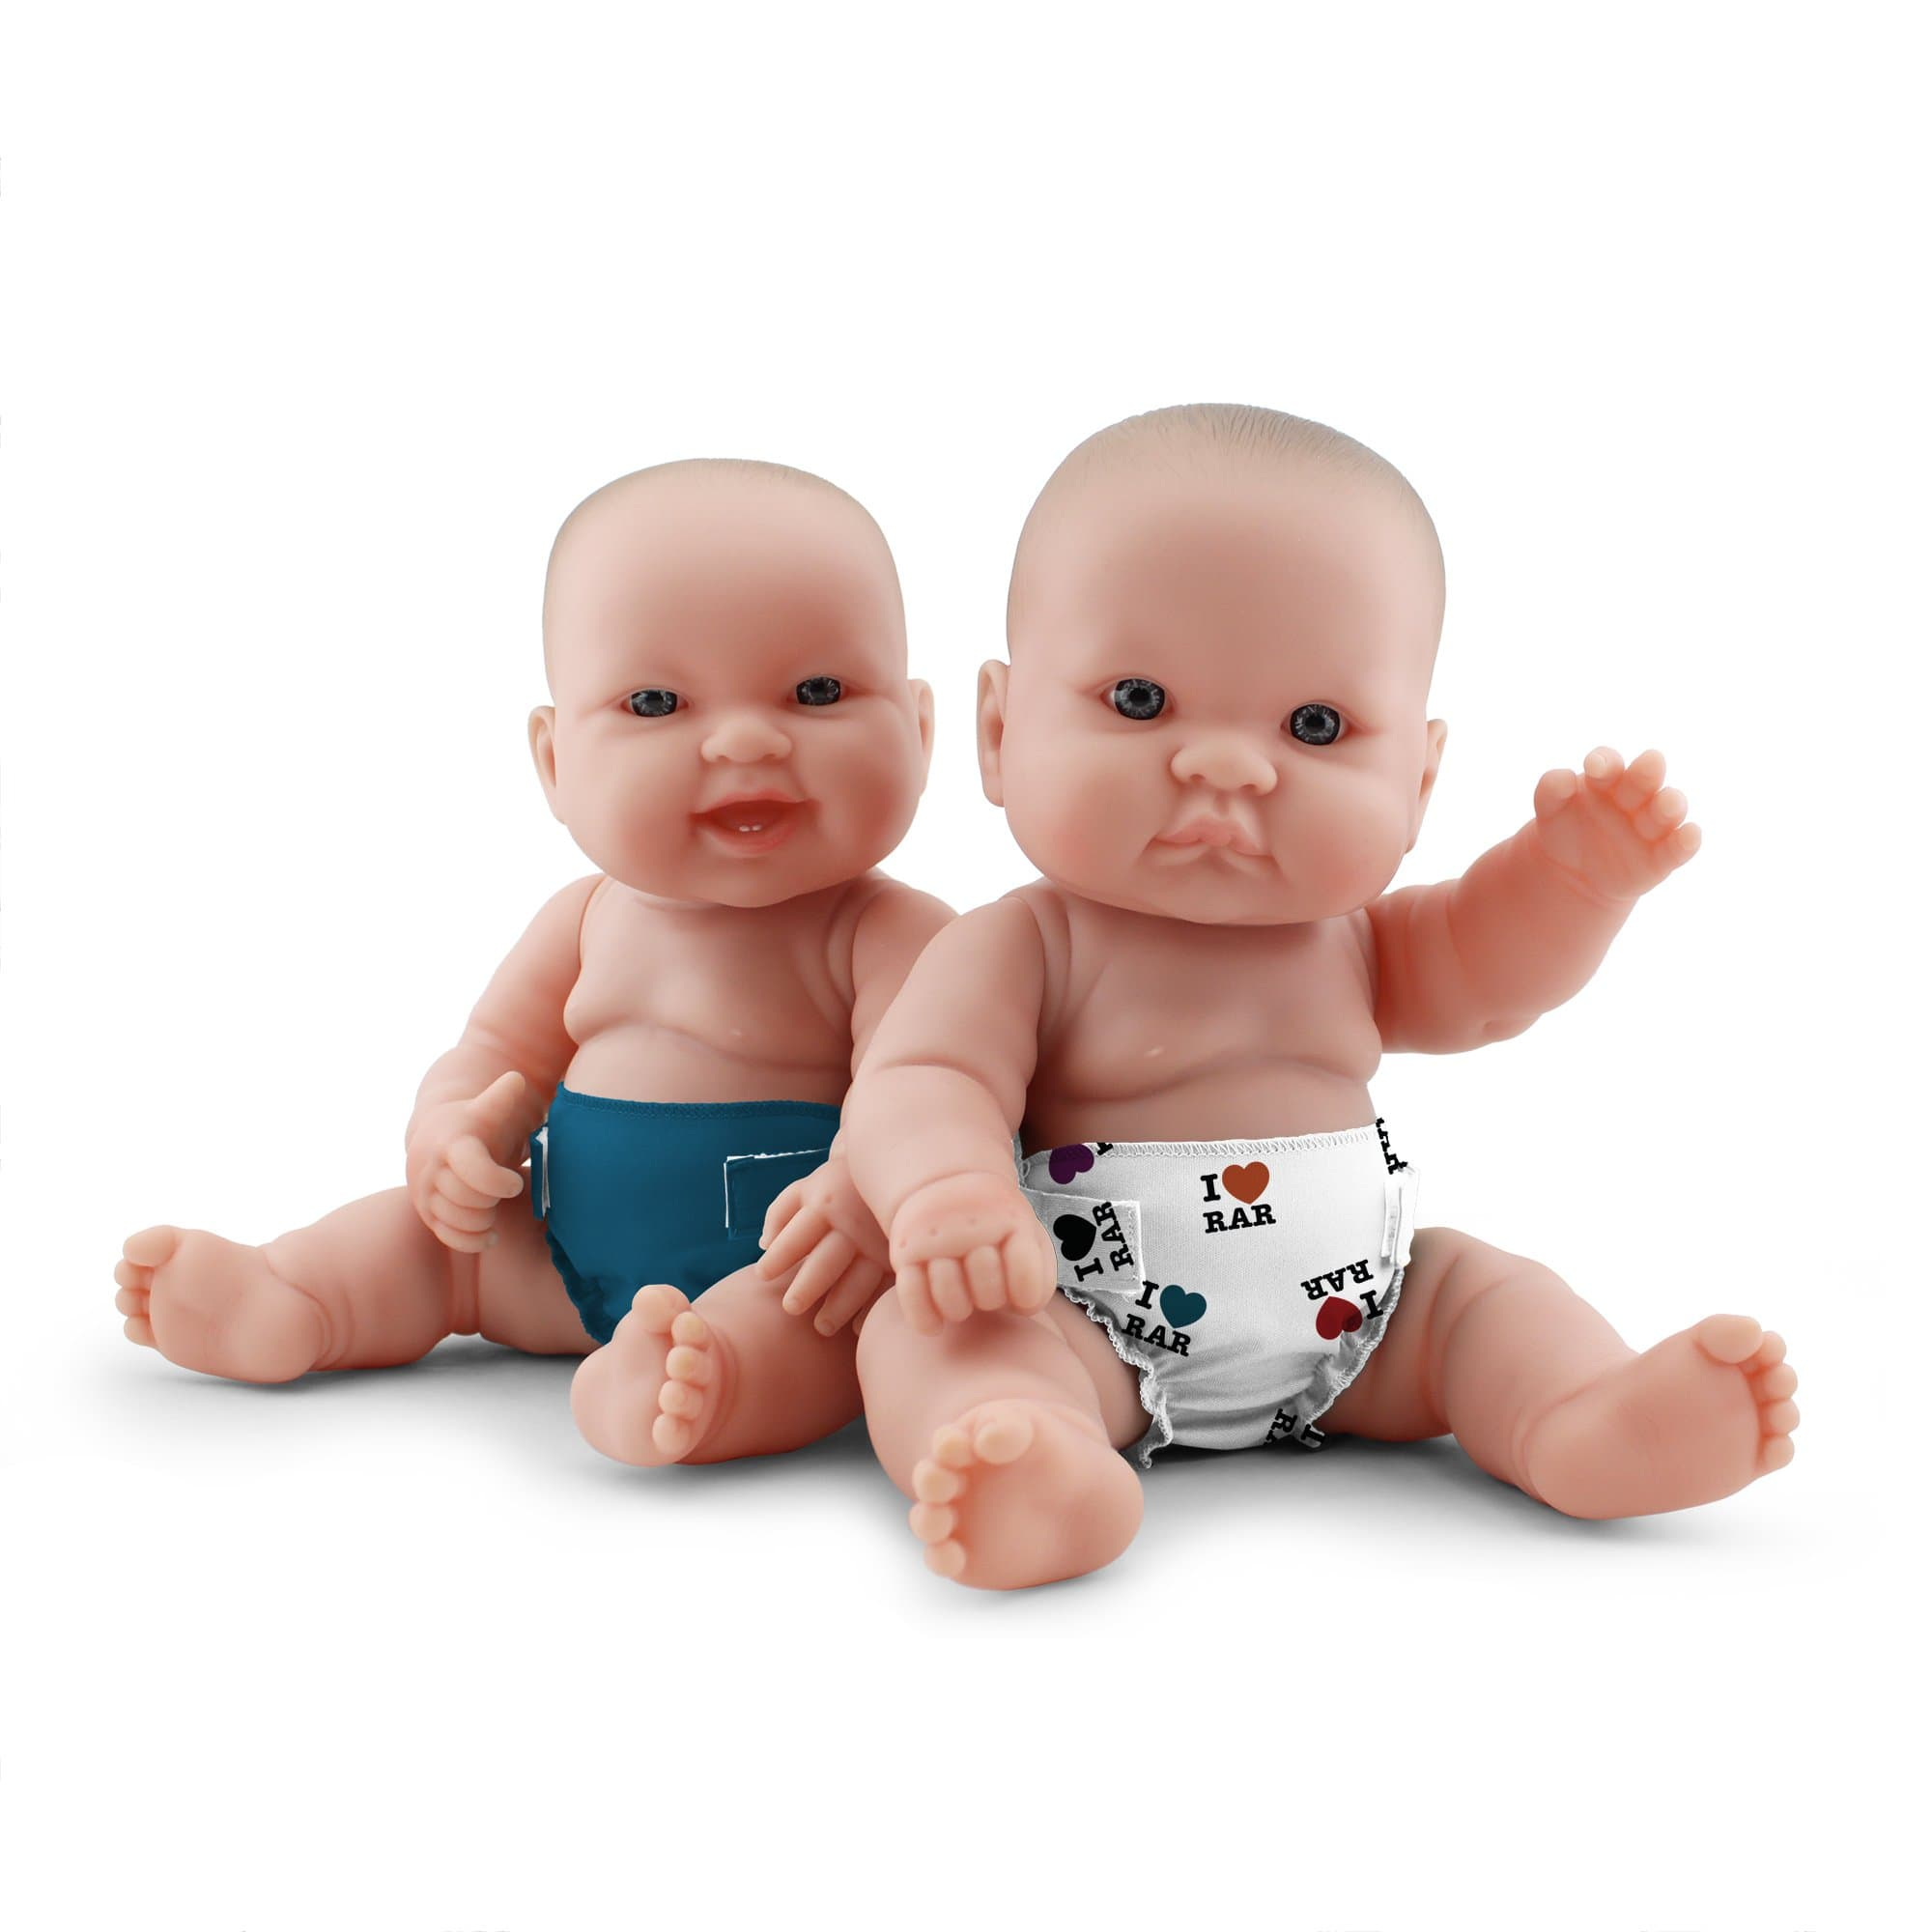 KangaCare Rumparooz Doll Diaper Set - I LOVE Rar